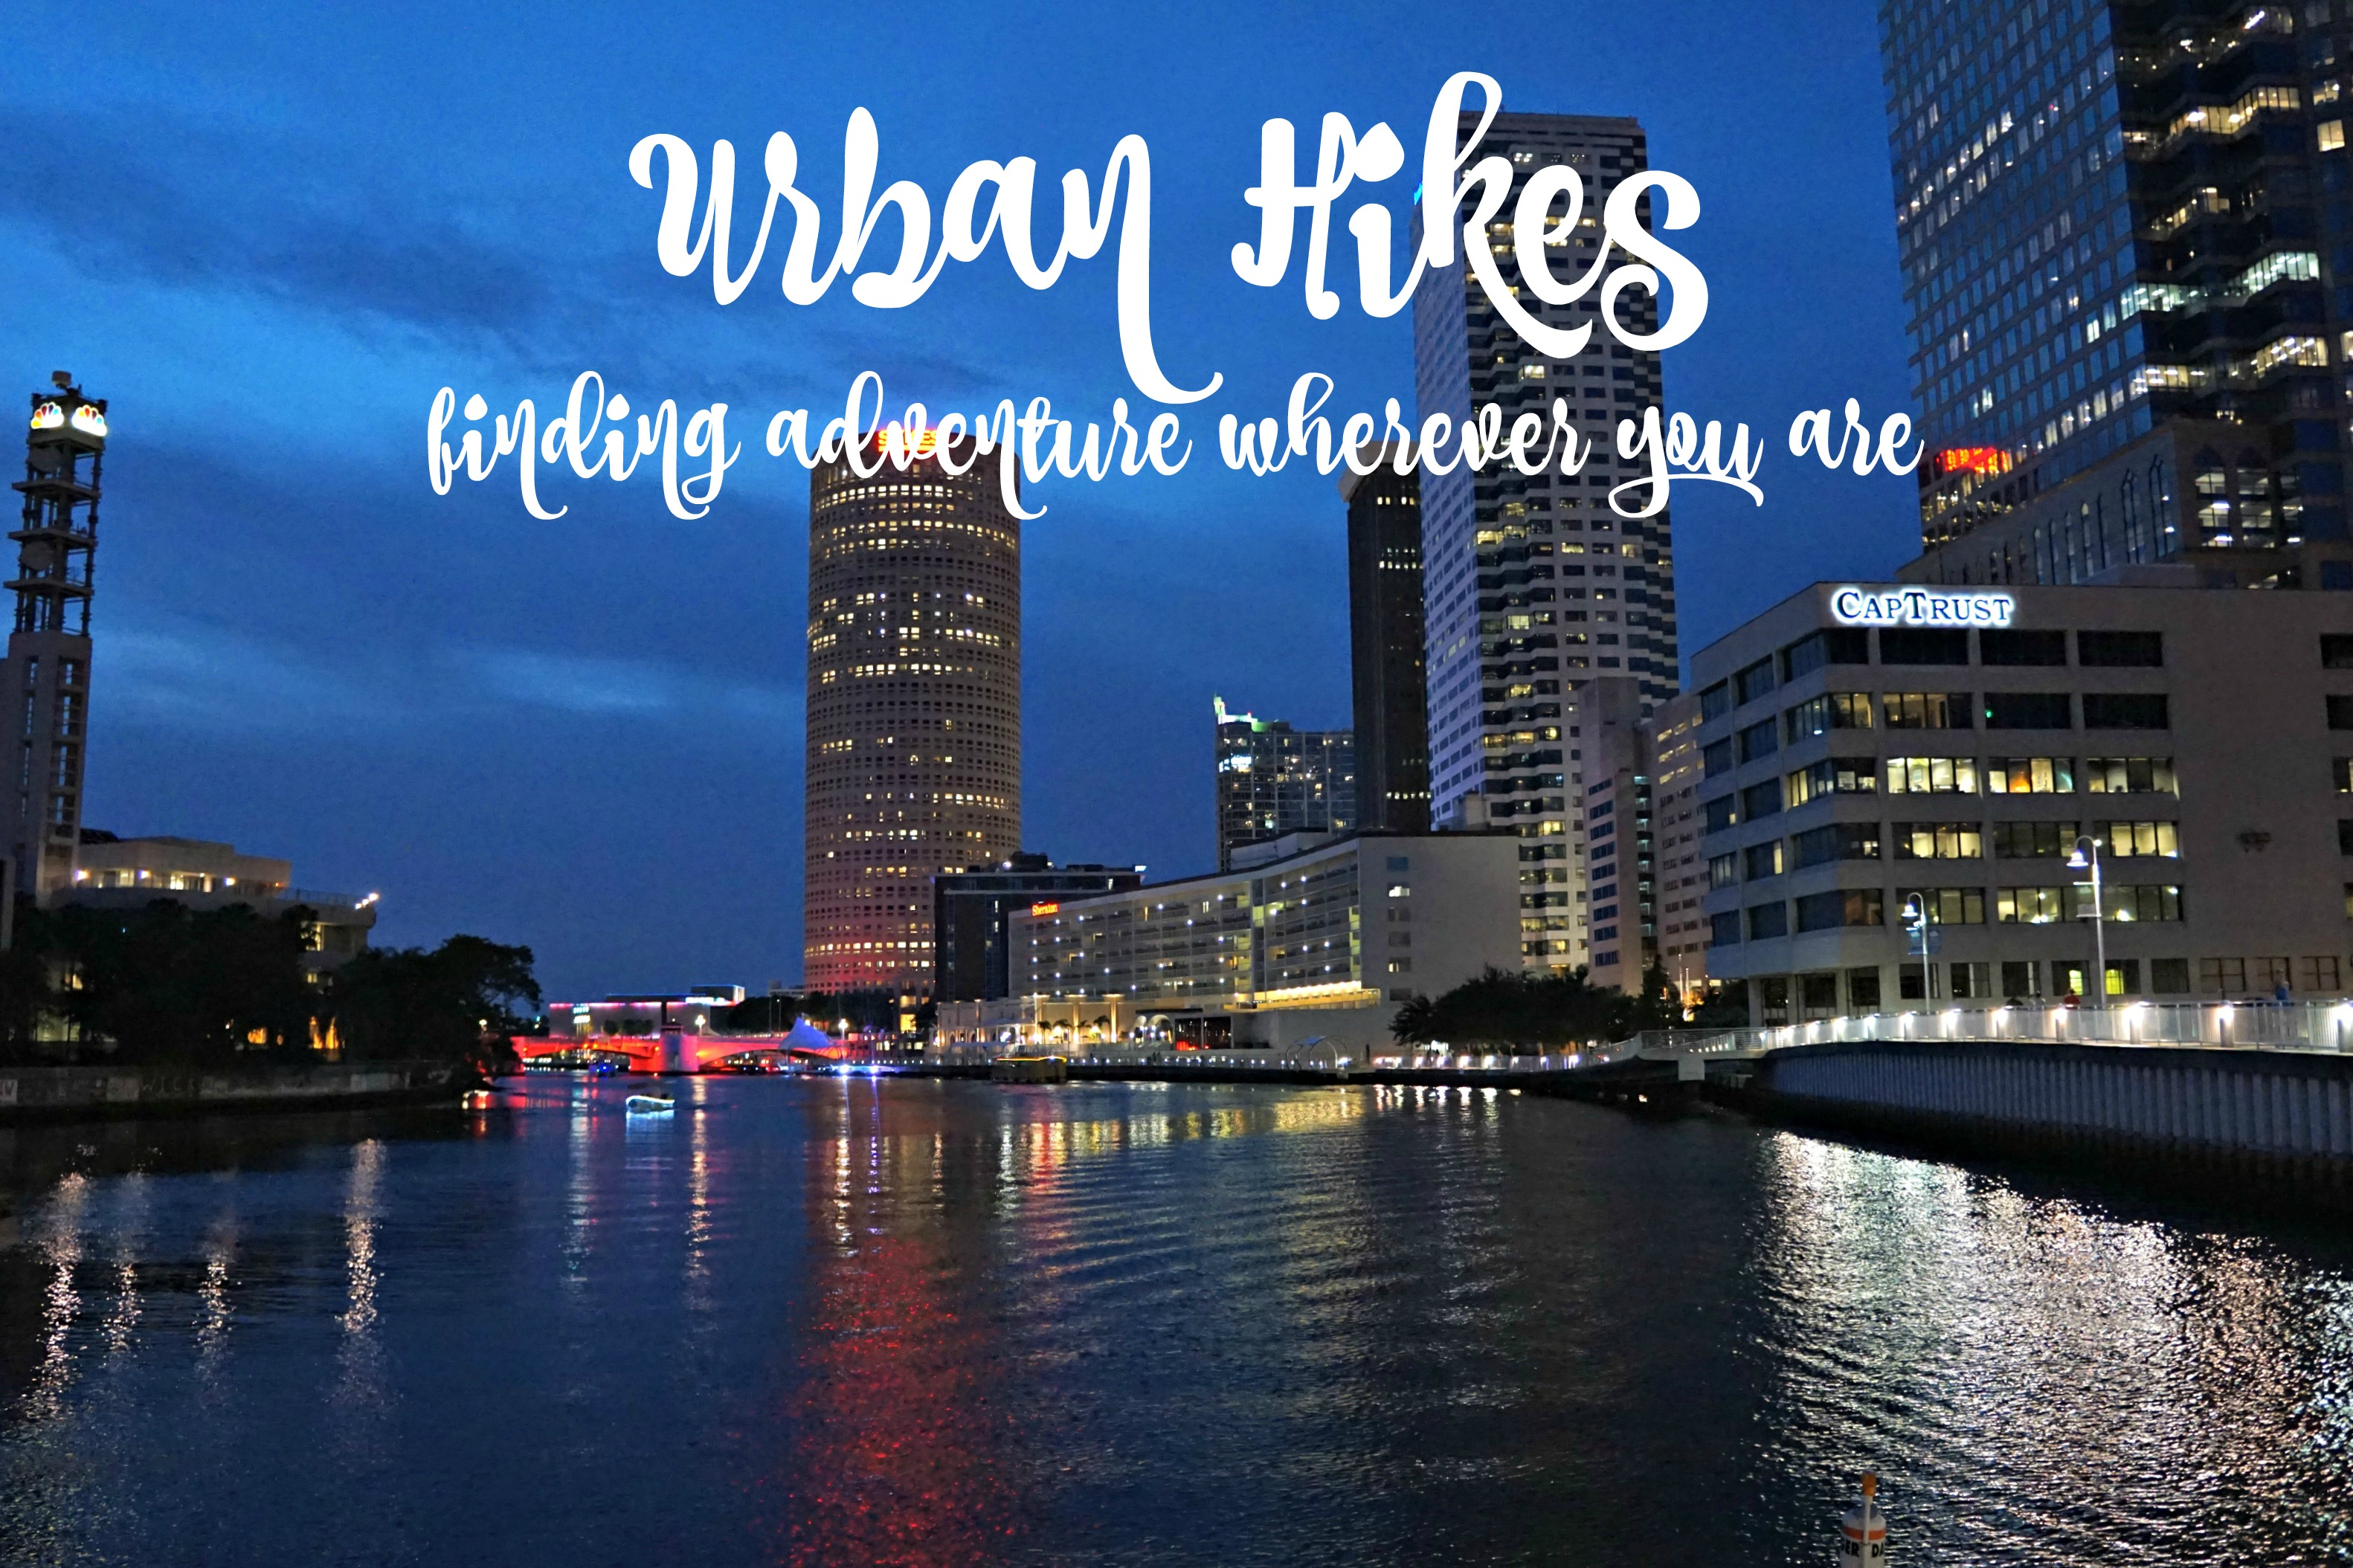 Urban Hikes & The Art of Finding Adventure Wherever You Are